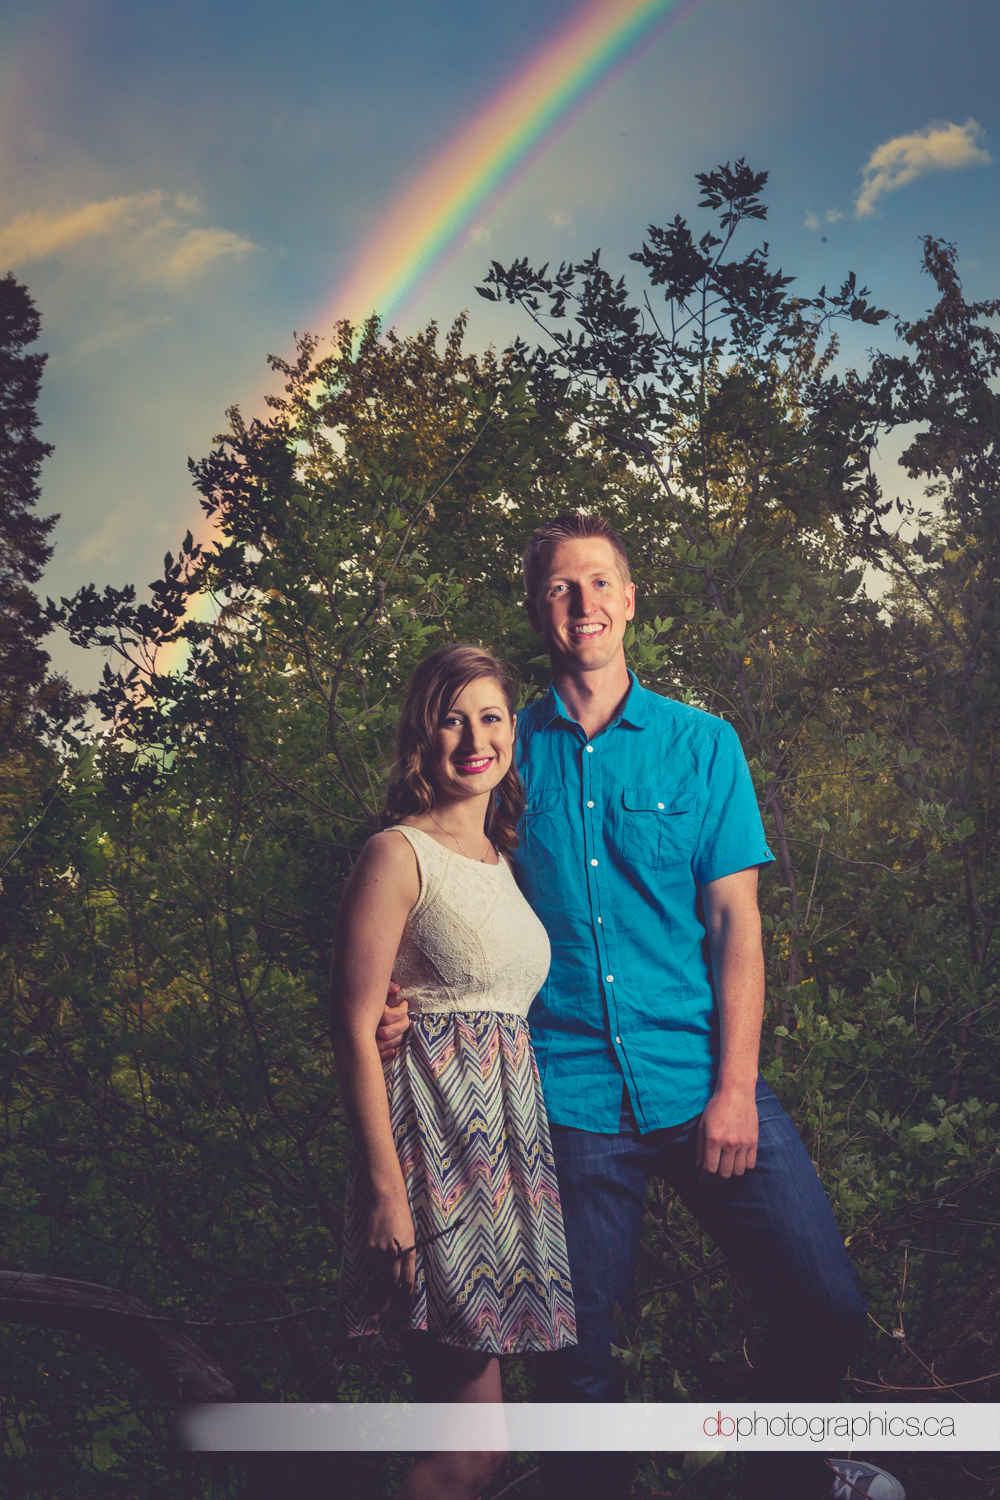 Cassie & Drew - Engagement Session - 20150820 - 0020.jpg